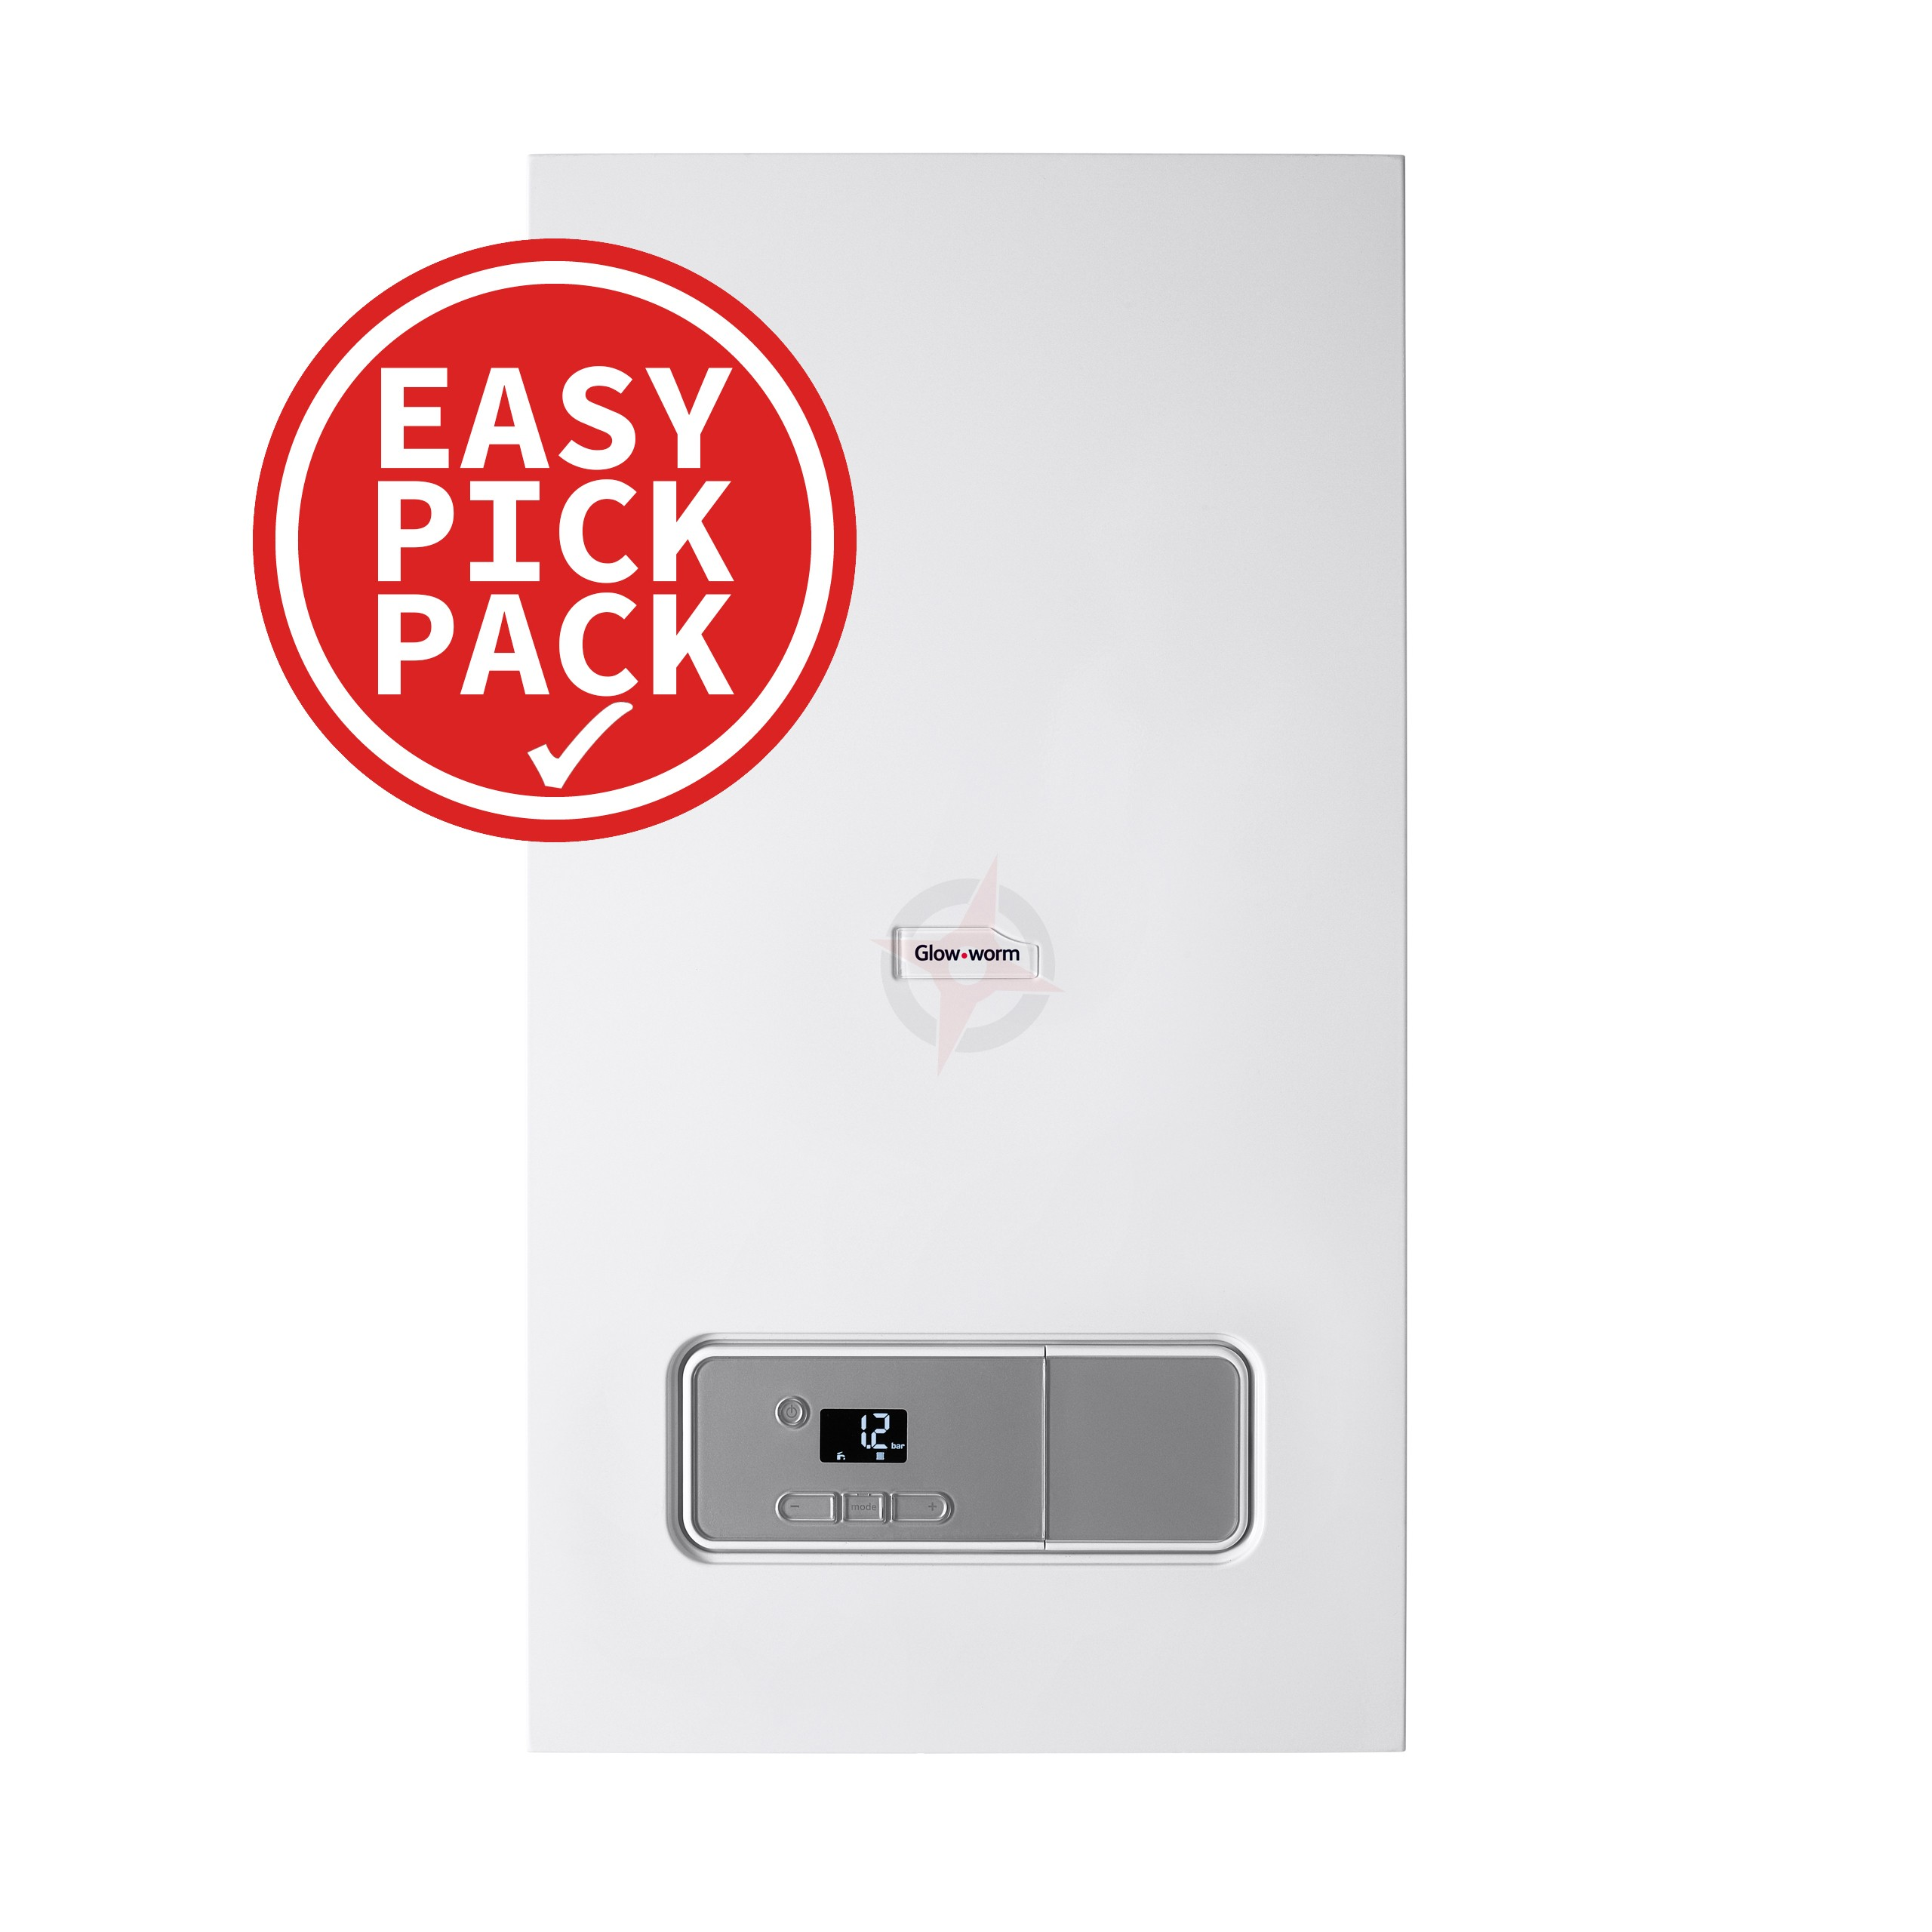 Glow-worm Energy 30C (ErP) Combi Boiler Easy Pick Pack